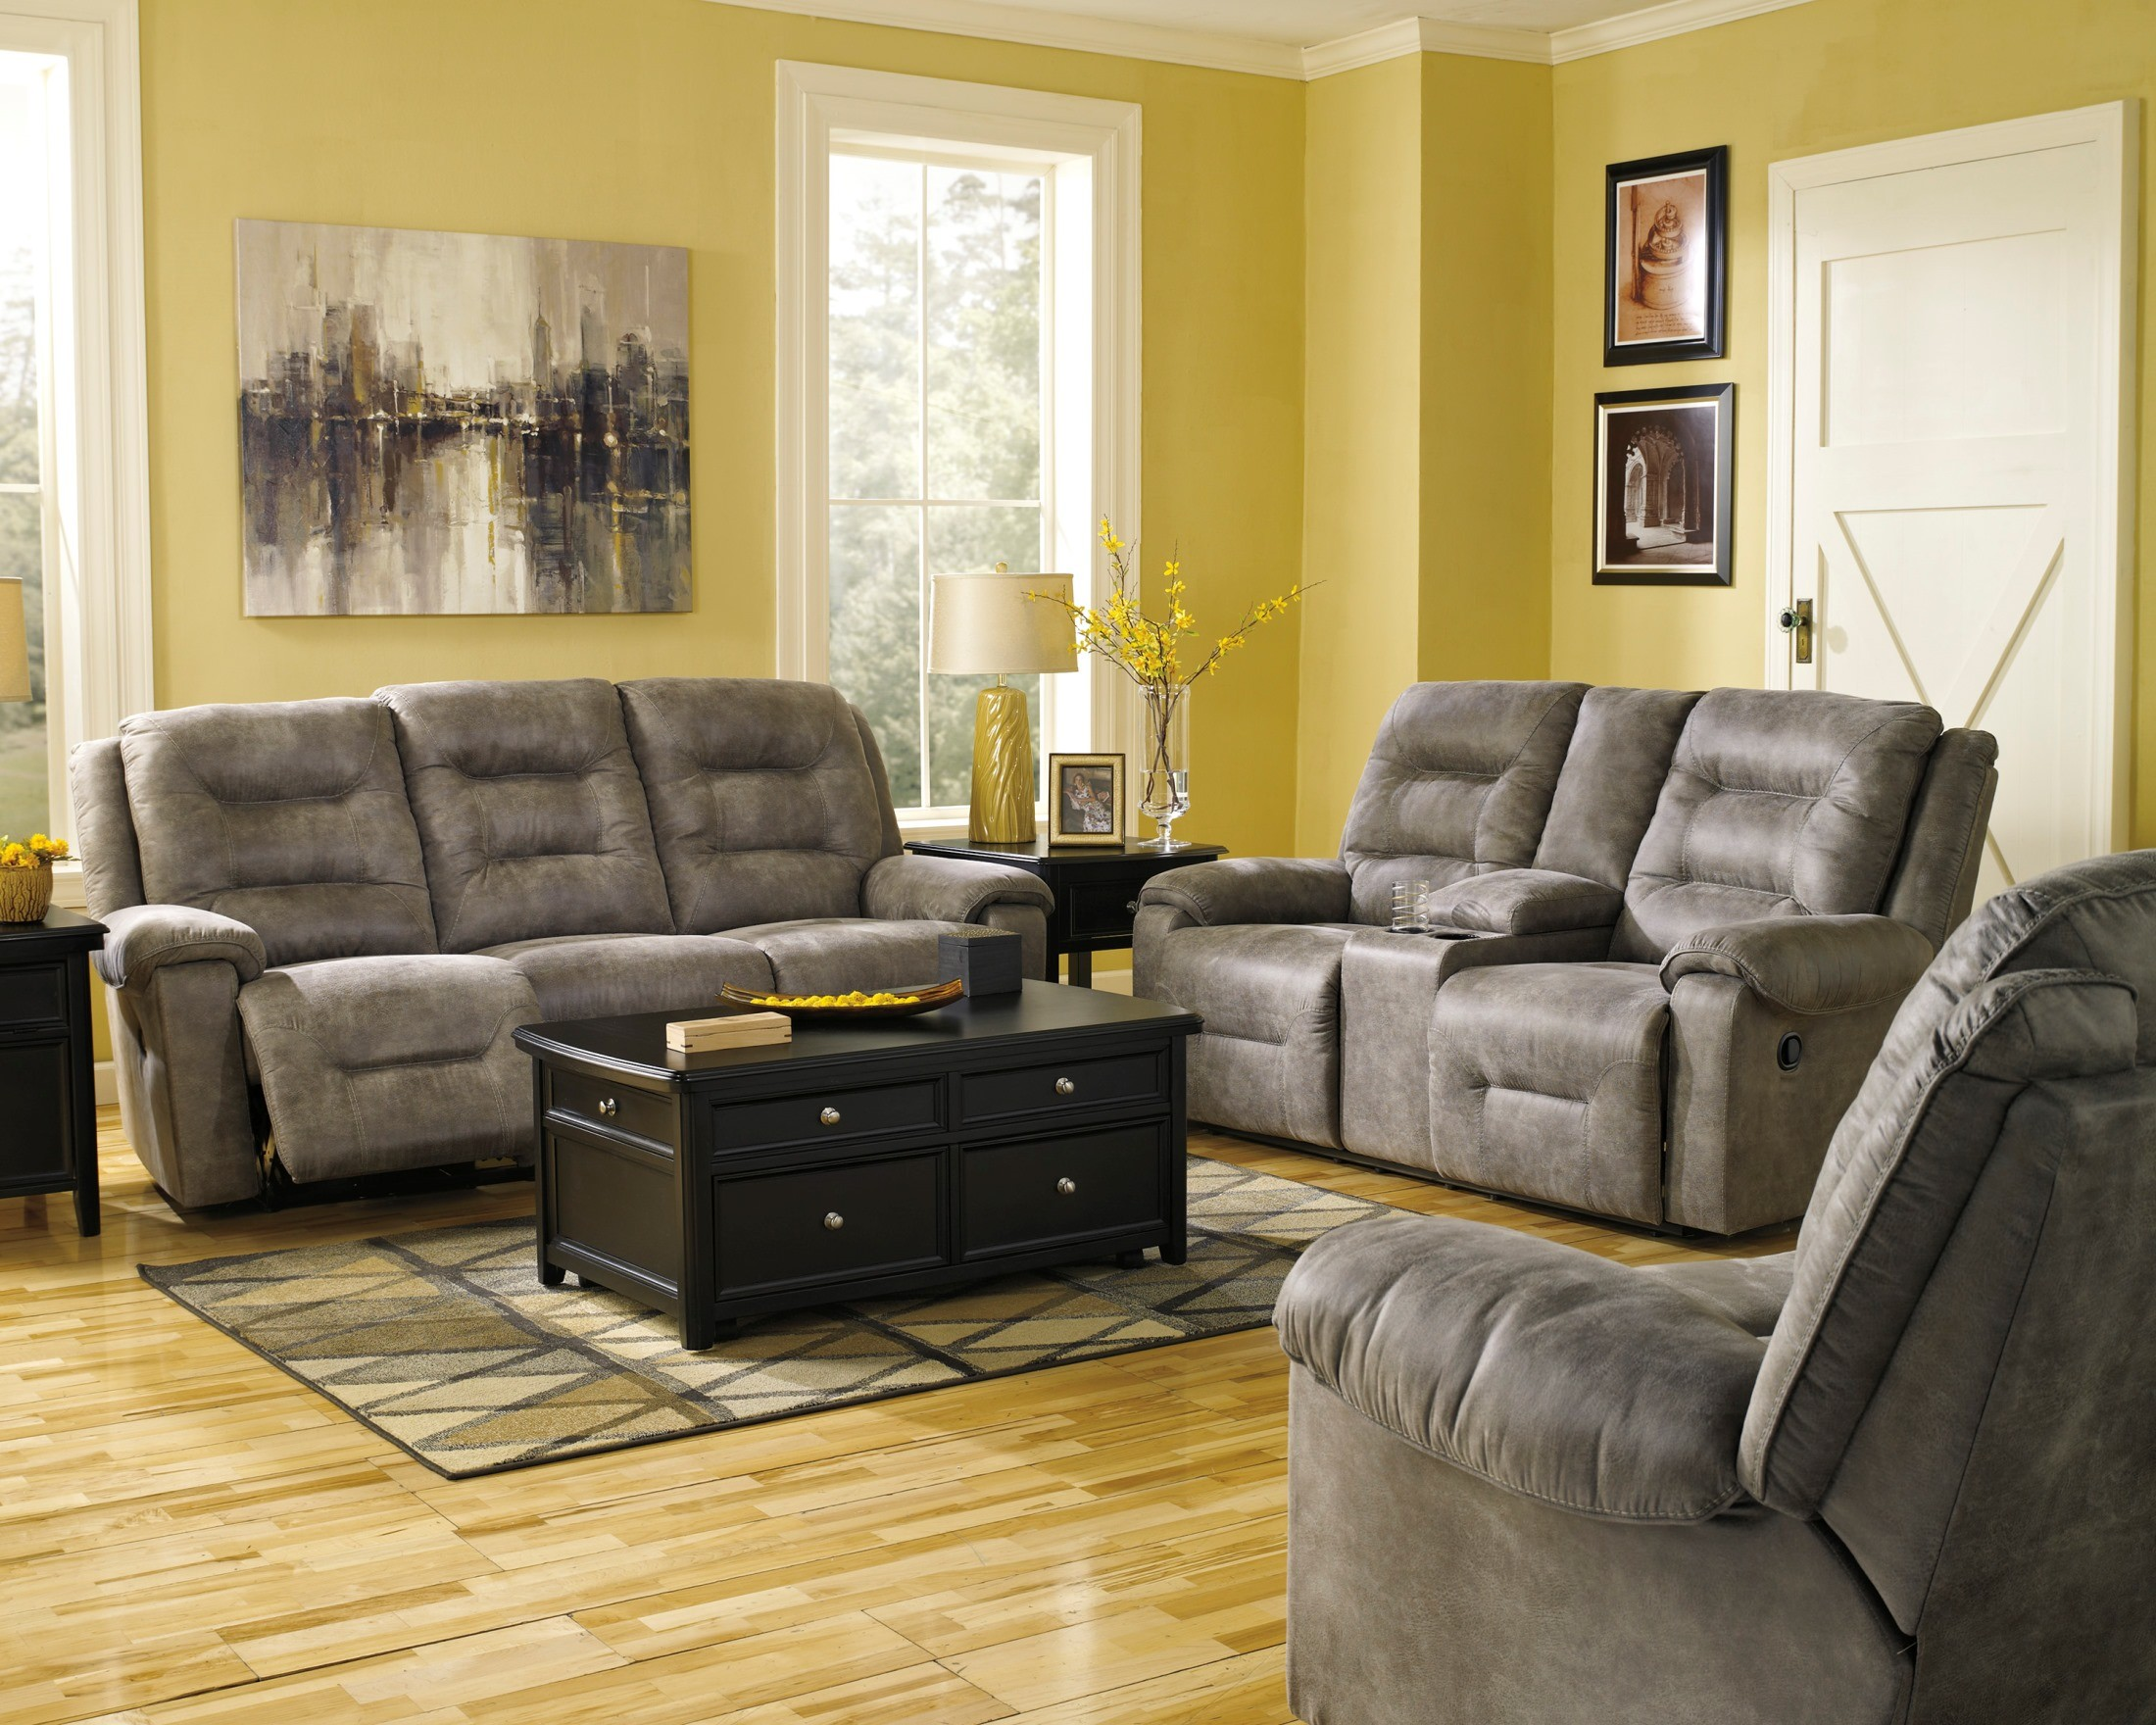 reclining living room furniture sets. Rotation Smoke Reclining Living Room Set · Old Vs New - Buying Furniture Online 947472 445517 Sets E